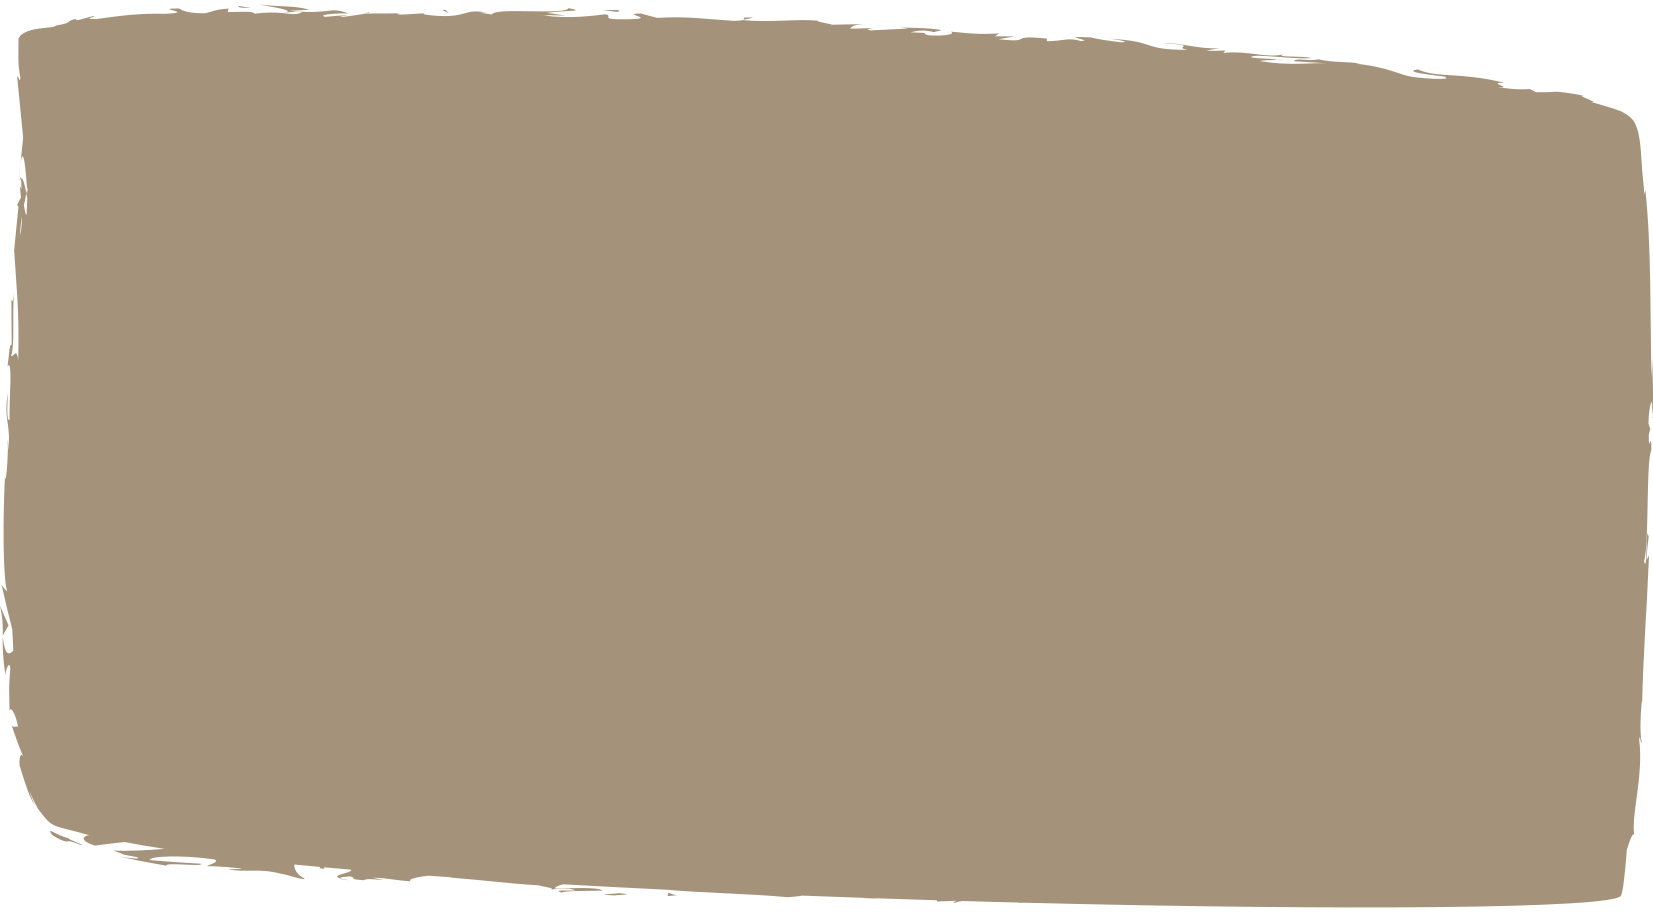 rectangle-grey Clipart illustration in PNG, SVG